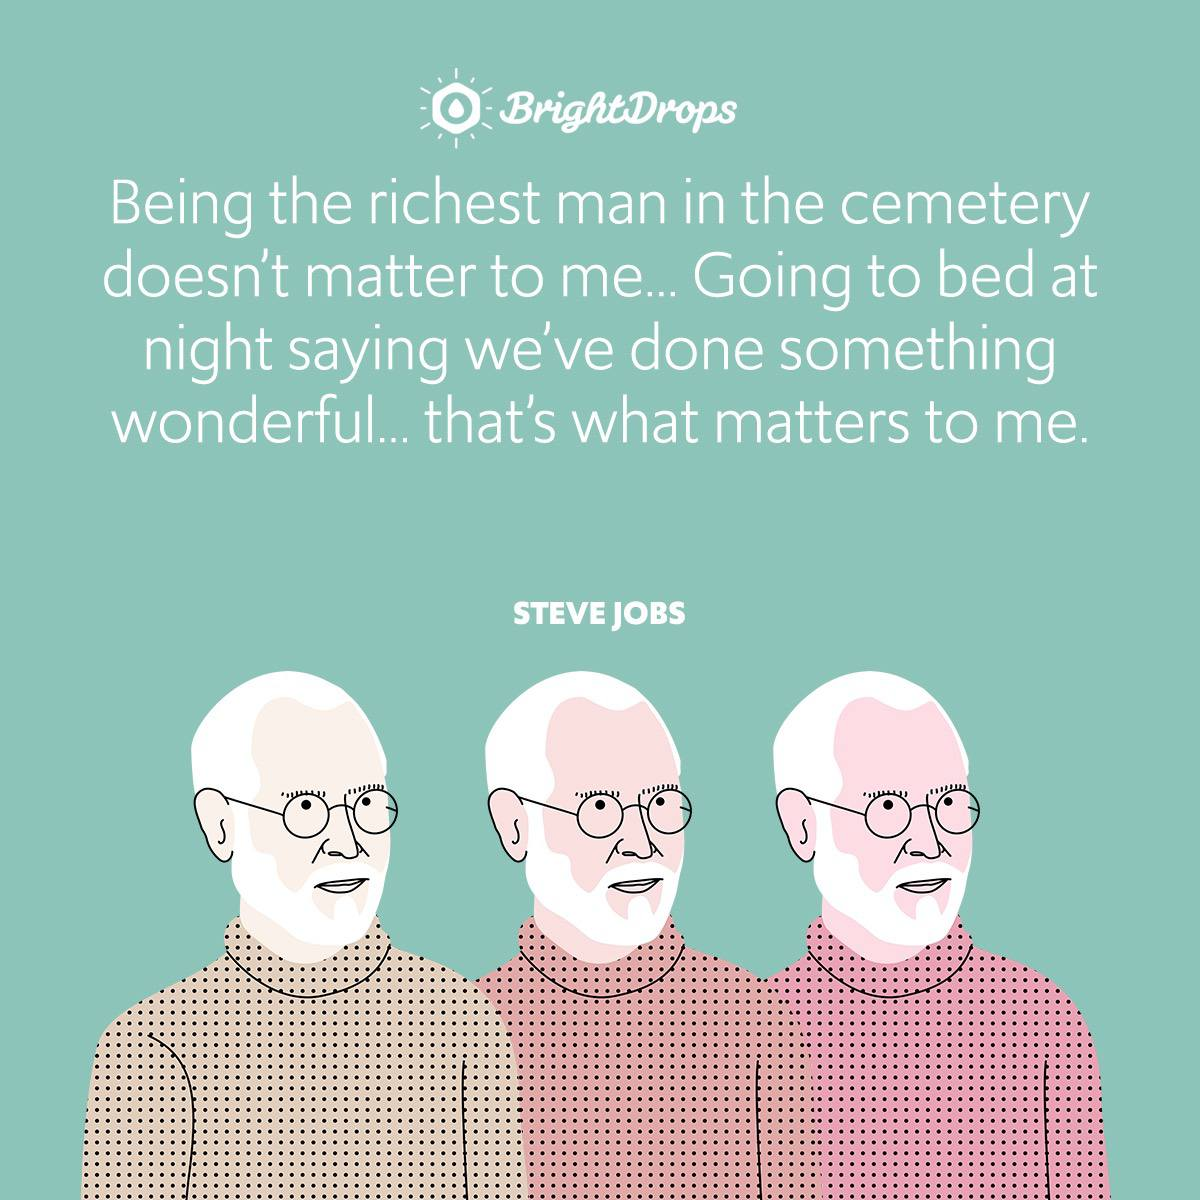 Being the richest man in the cemetery doesn't matter to me… Going to bed at night saying we've done something wonderful… that's what matters to me.